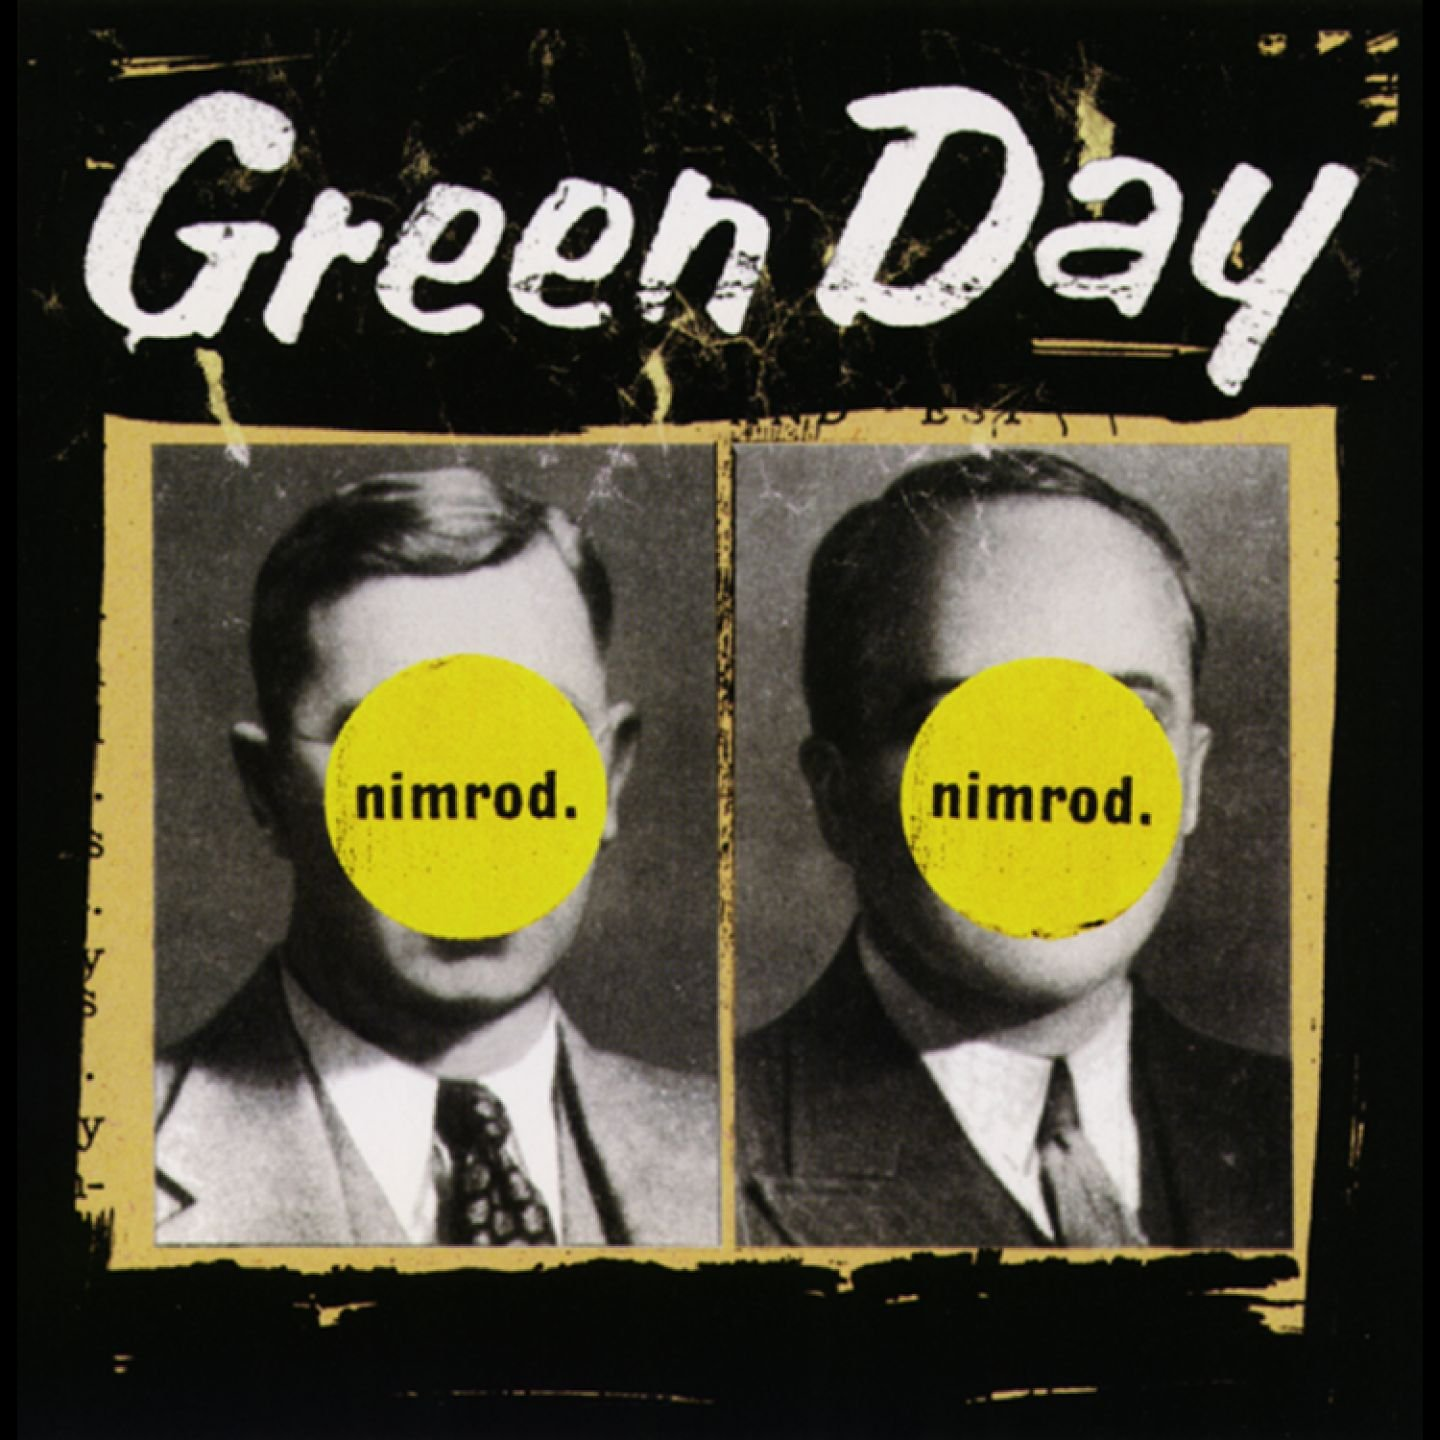 The song is great, and so is the video, which poked fun at football. Ironically, years later in 2006, Green Day would perform at the New Orleans Superdome with U2 before a Saints/Falcons game.